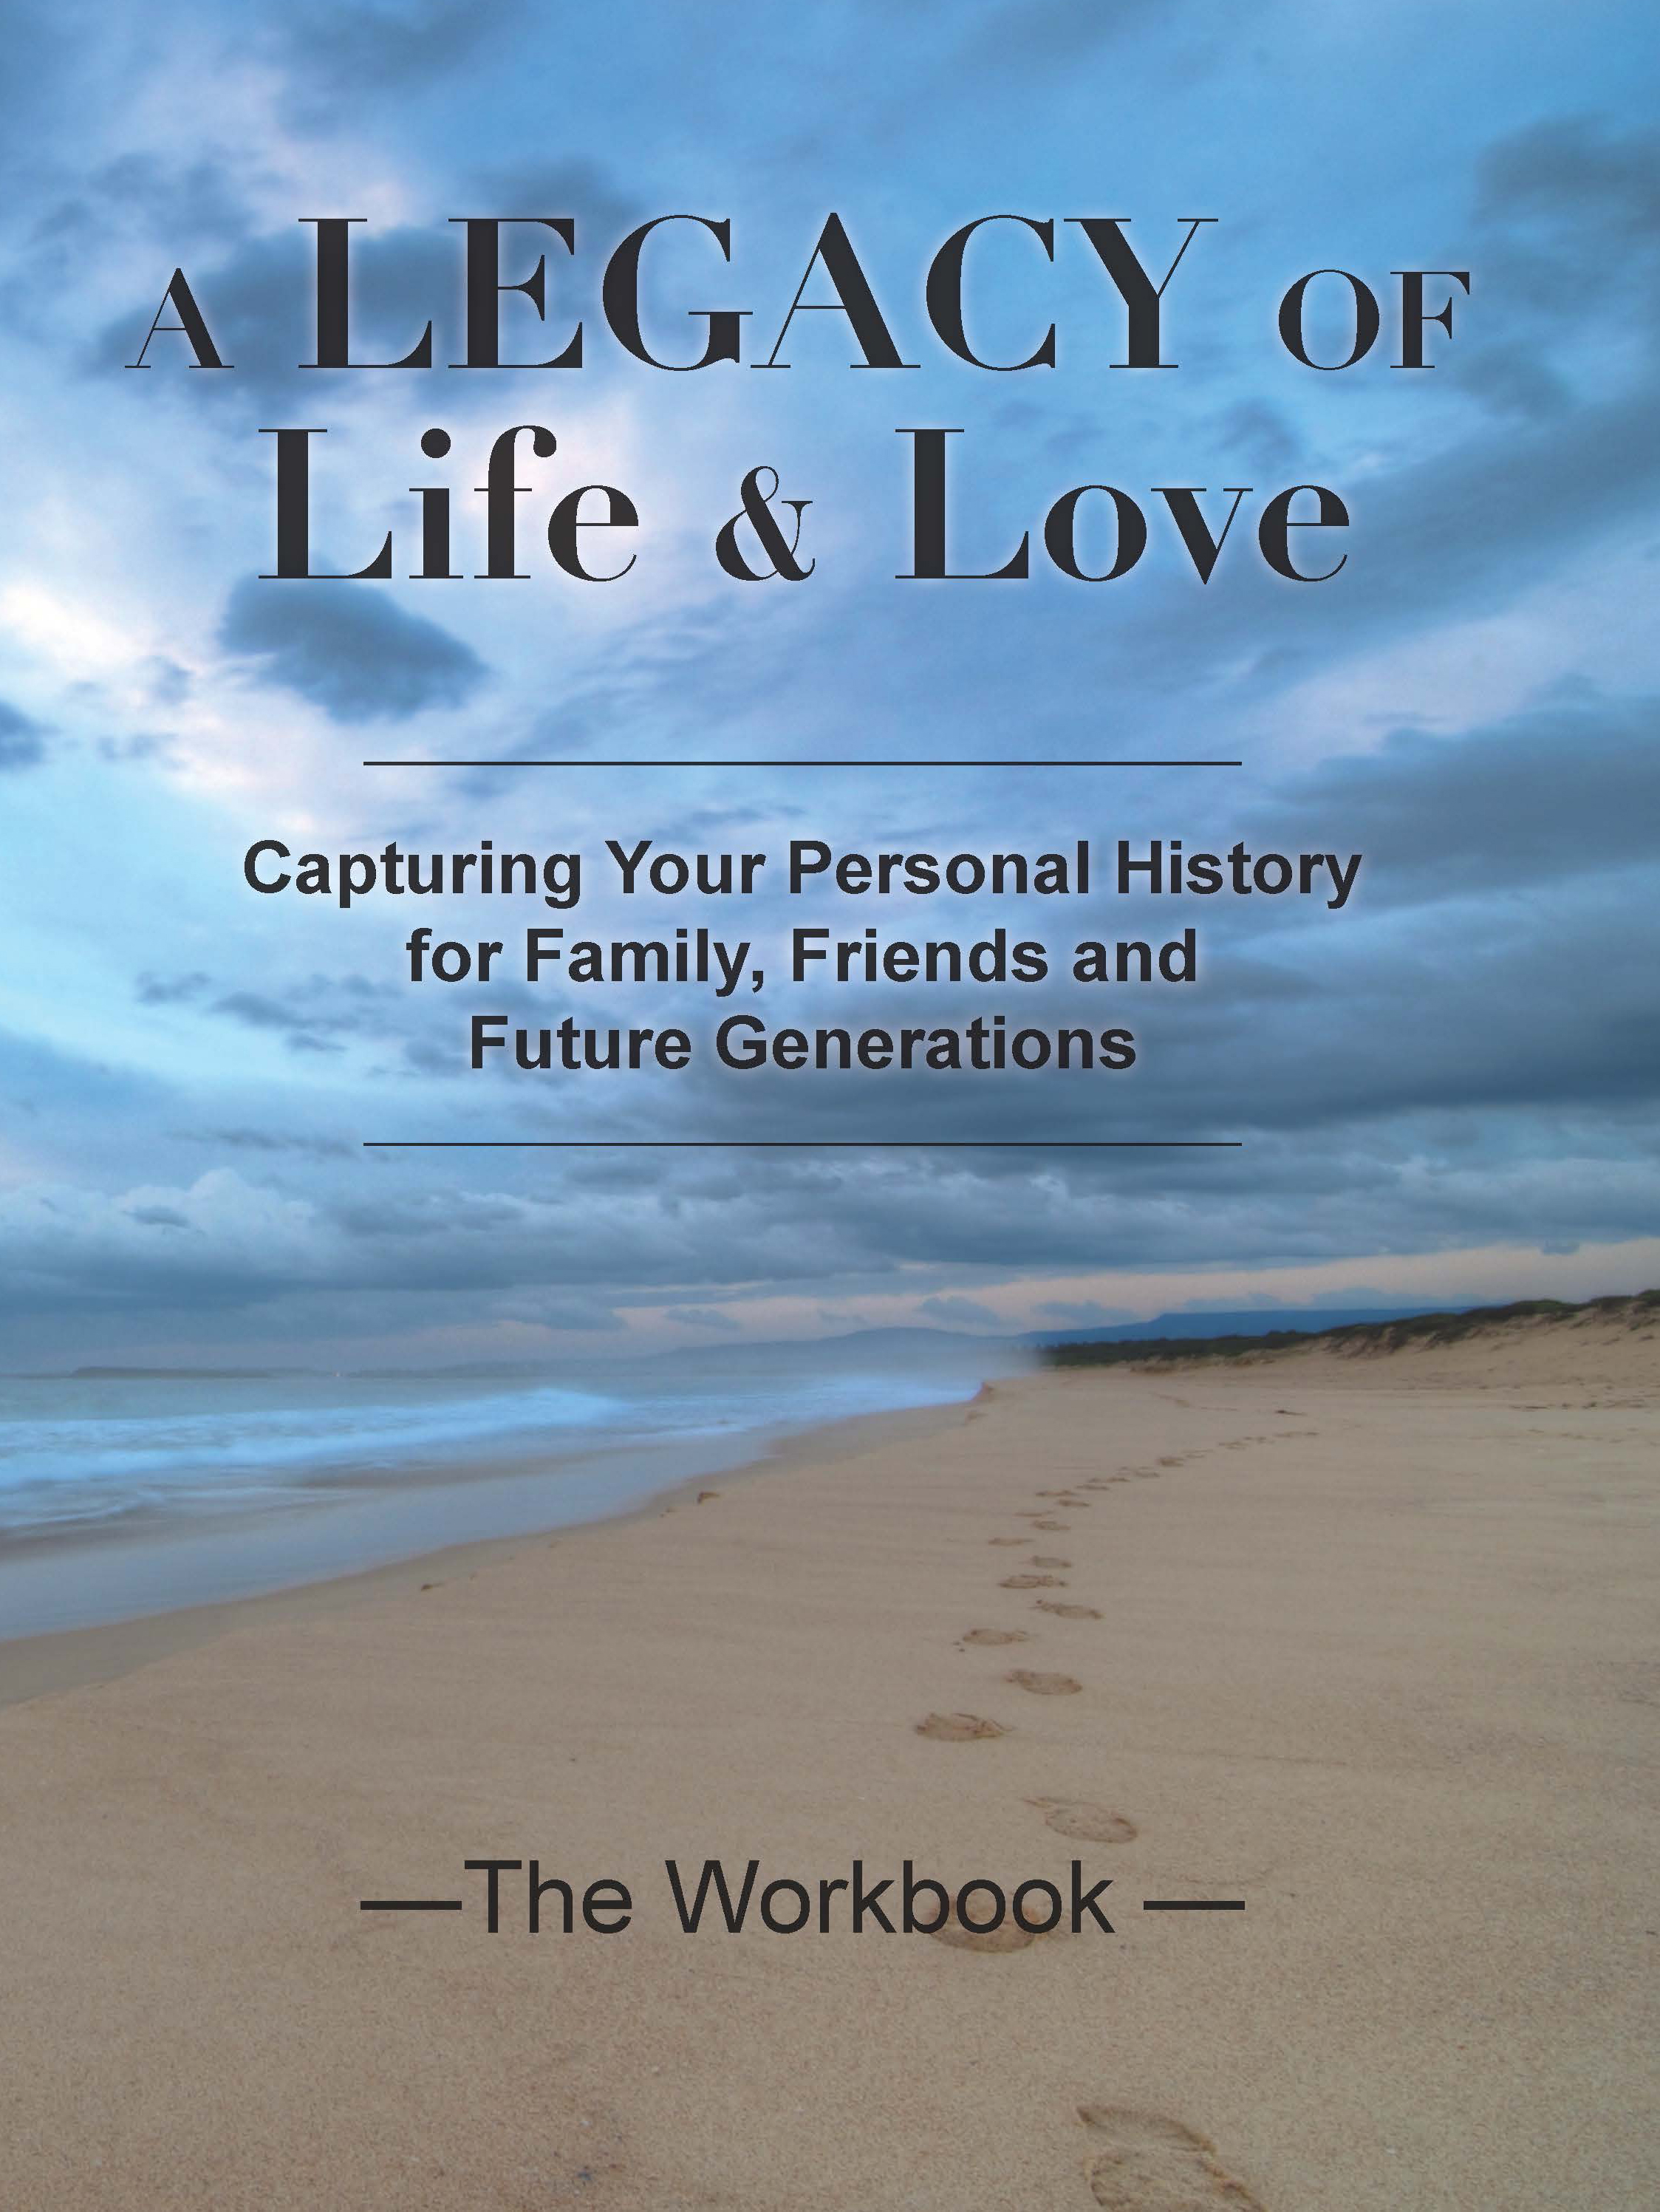 A Legacy of Life and Love Workbook